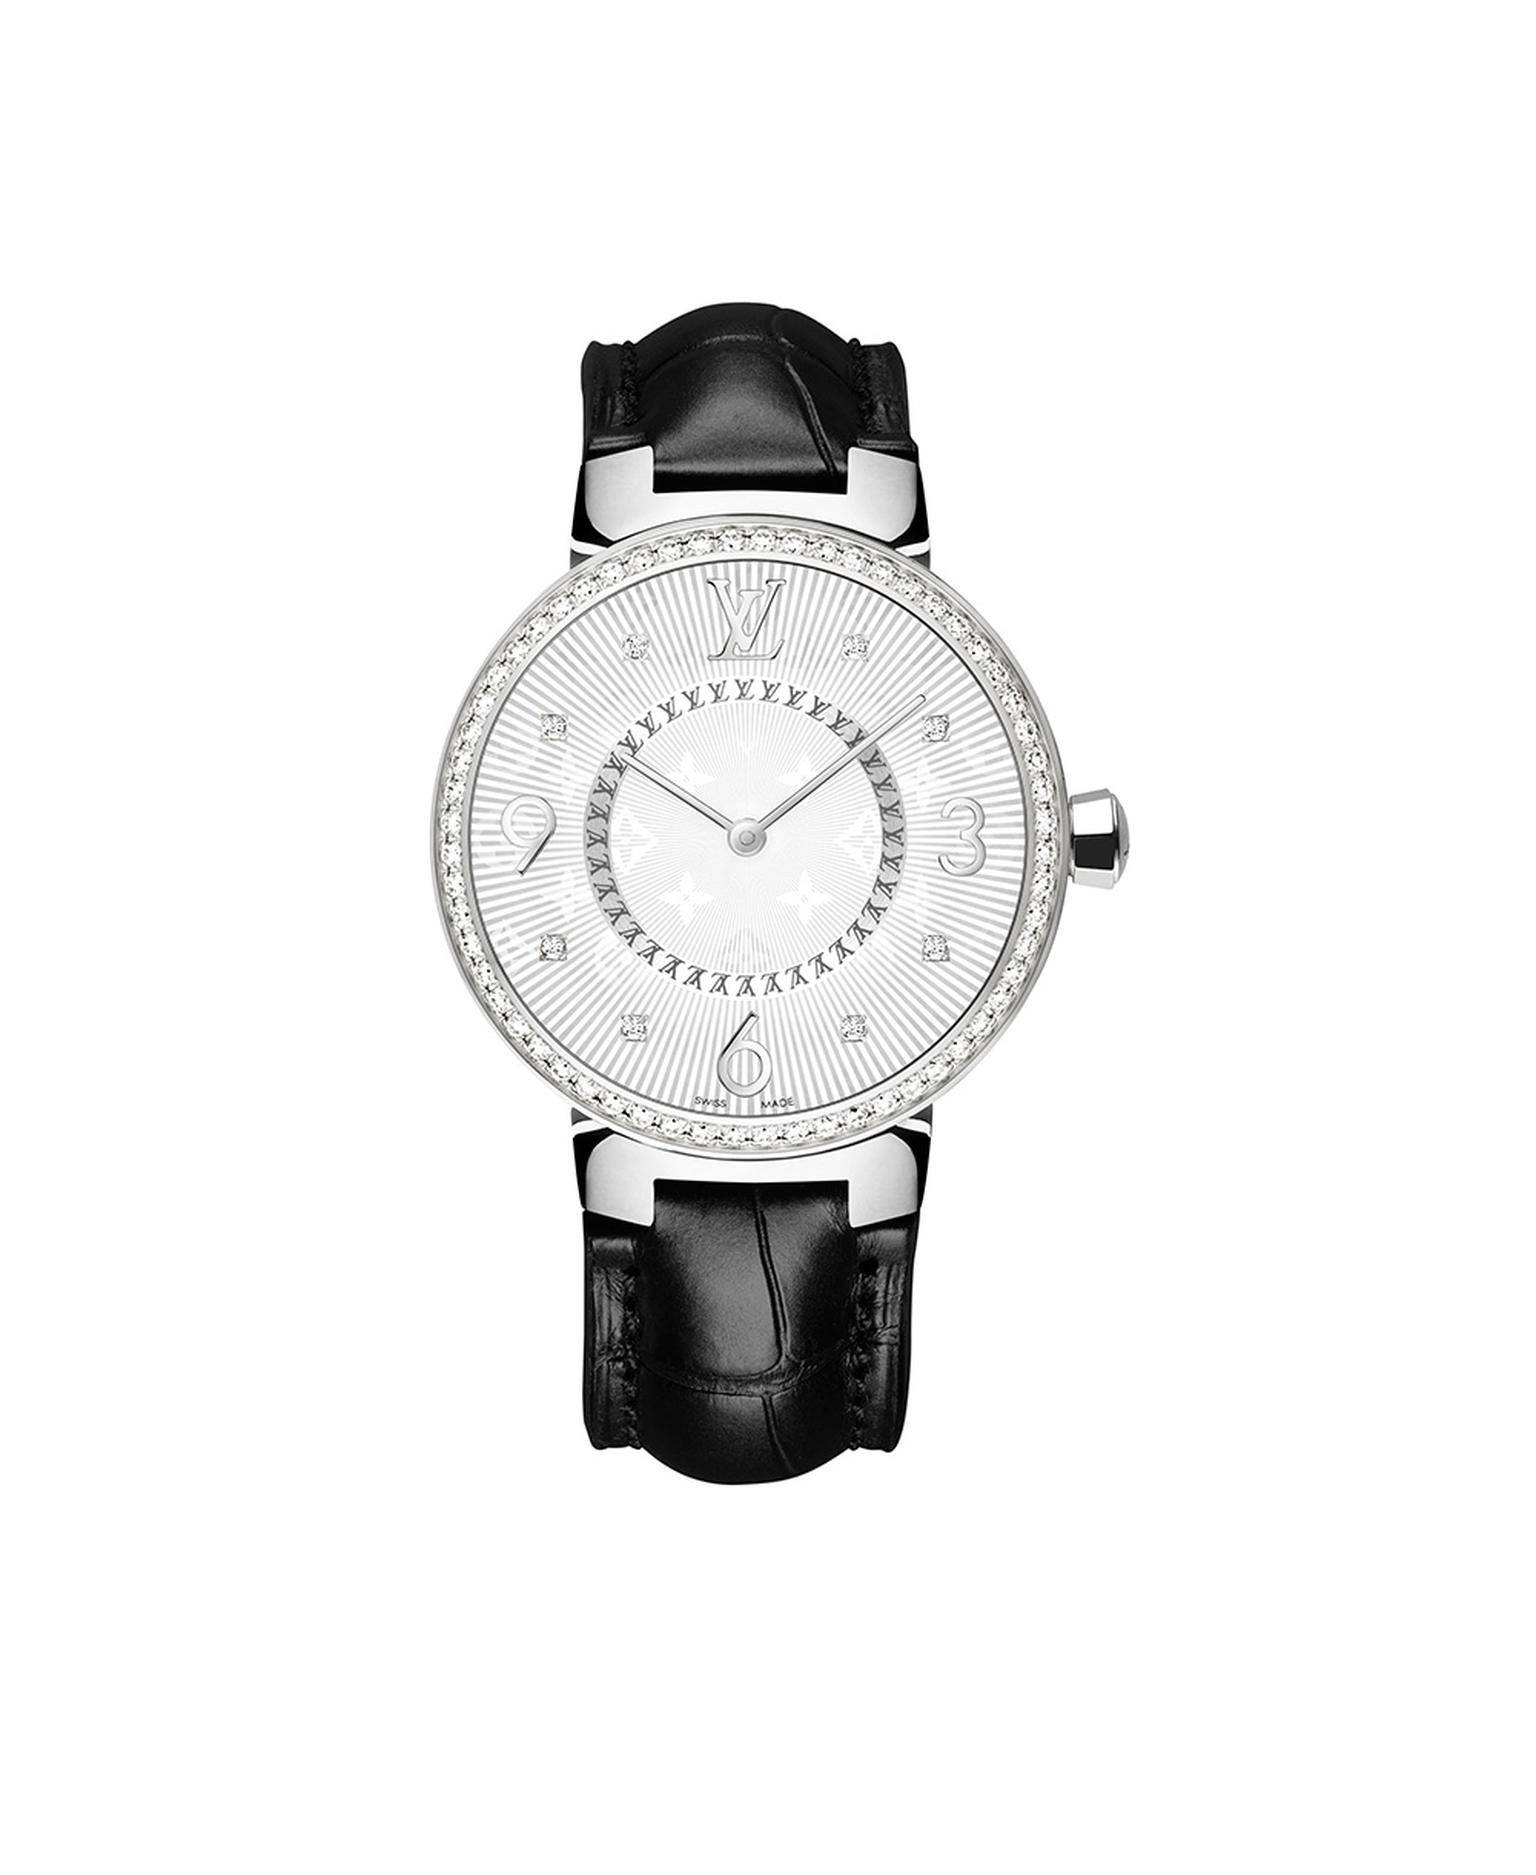 Louis Vuitton Tambour Monogram Acier Serti 28mm watch with a steel case, diamond-set bezel and quartz movement on a black alligator strap. © LOUIS VUITTON. Auteur: I REEL.